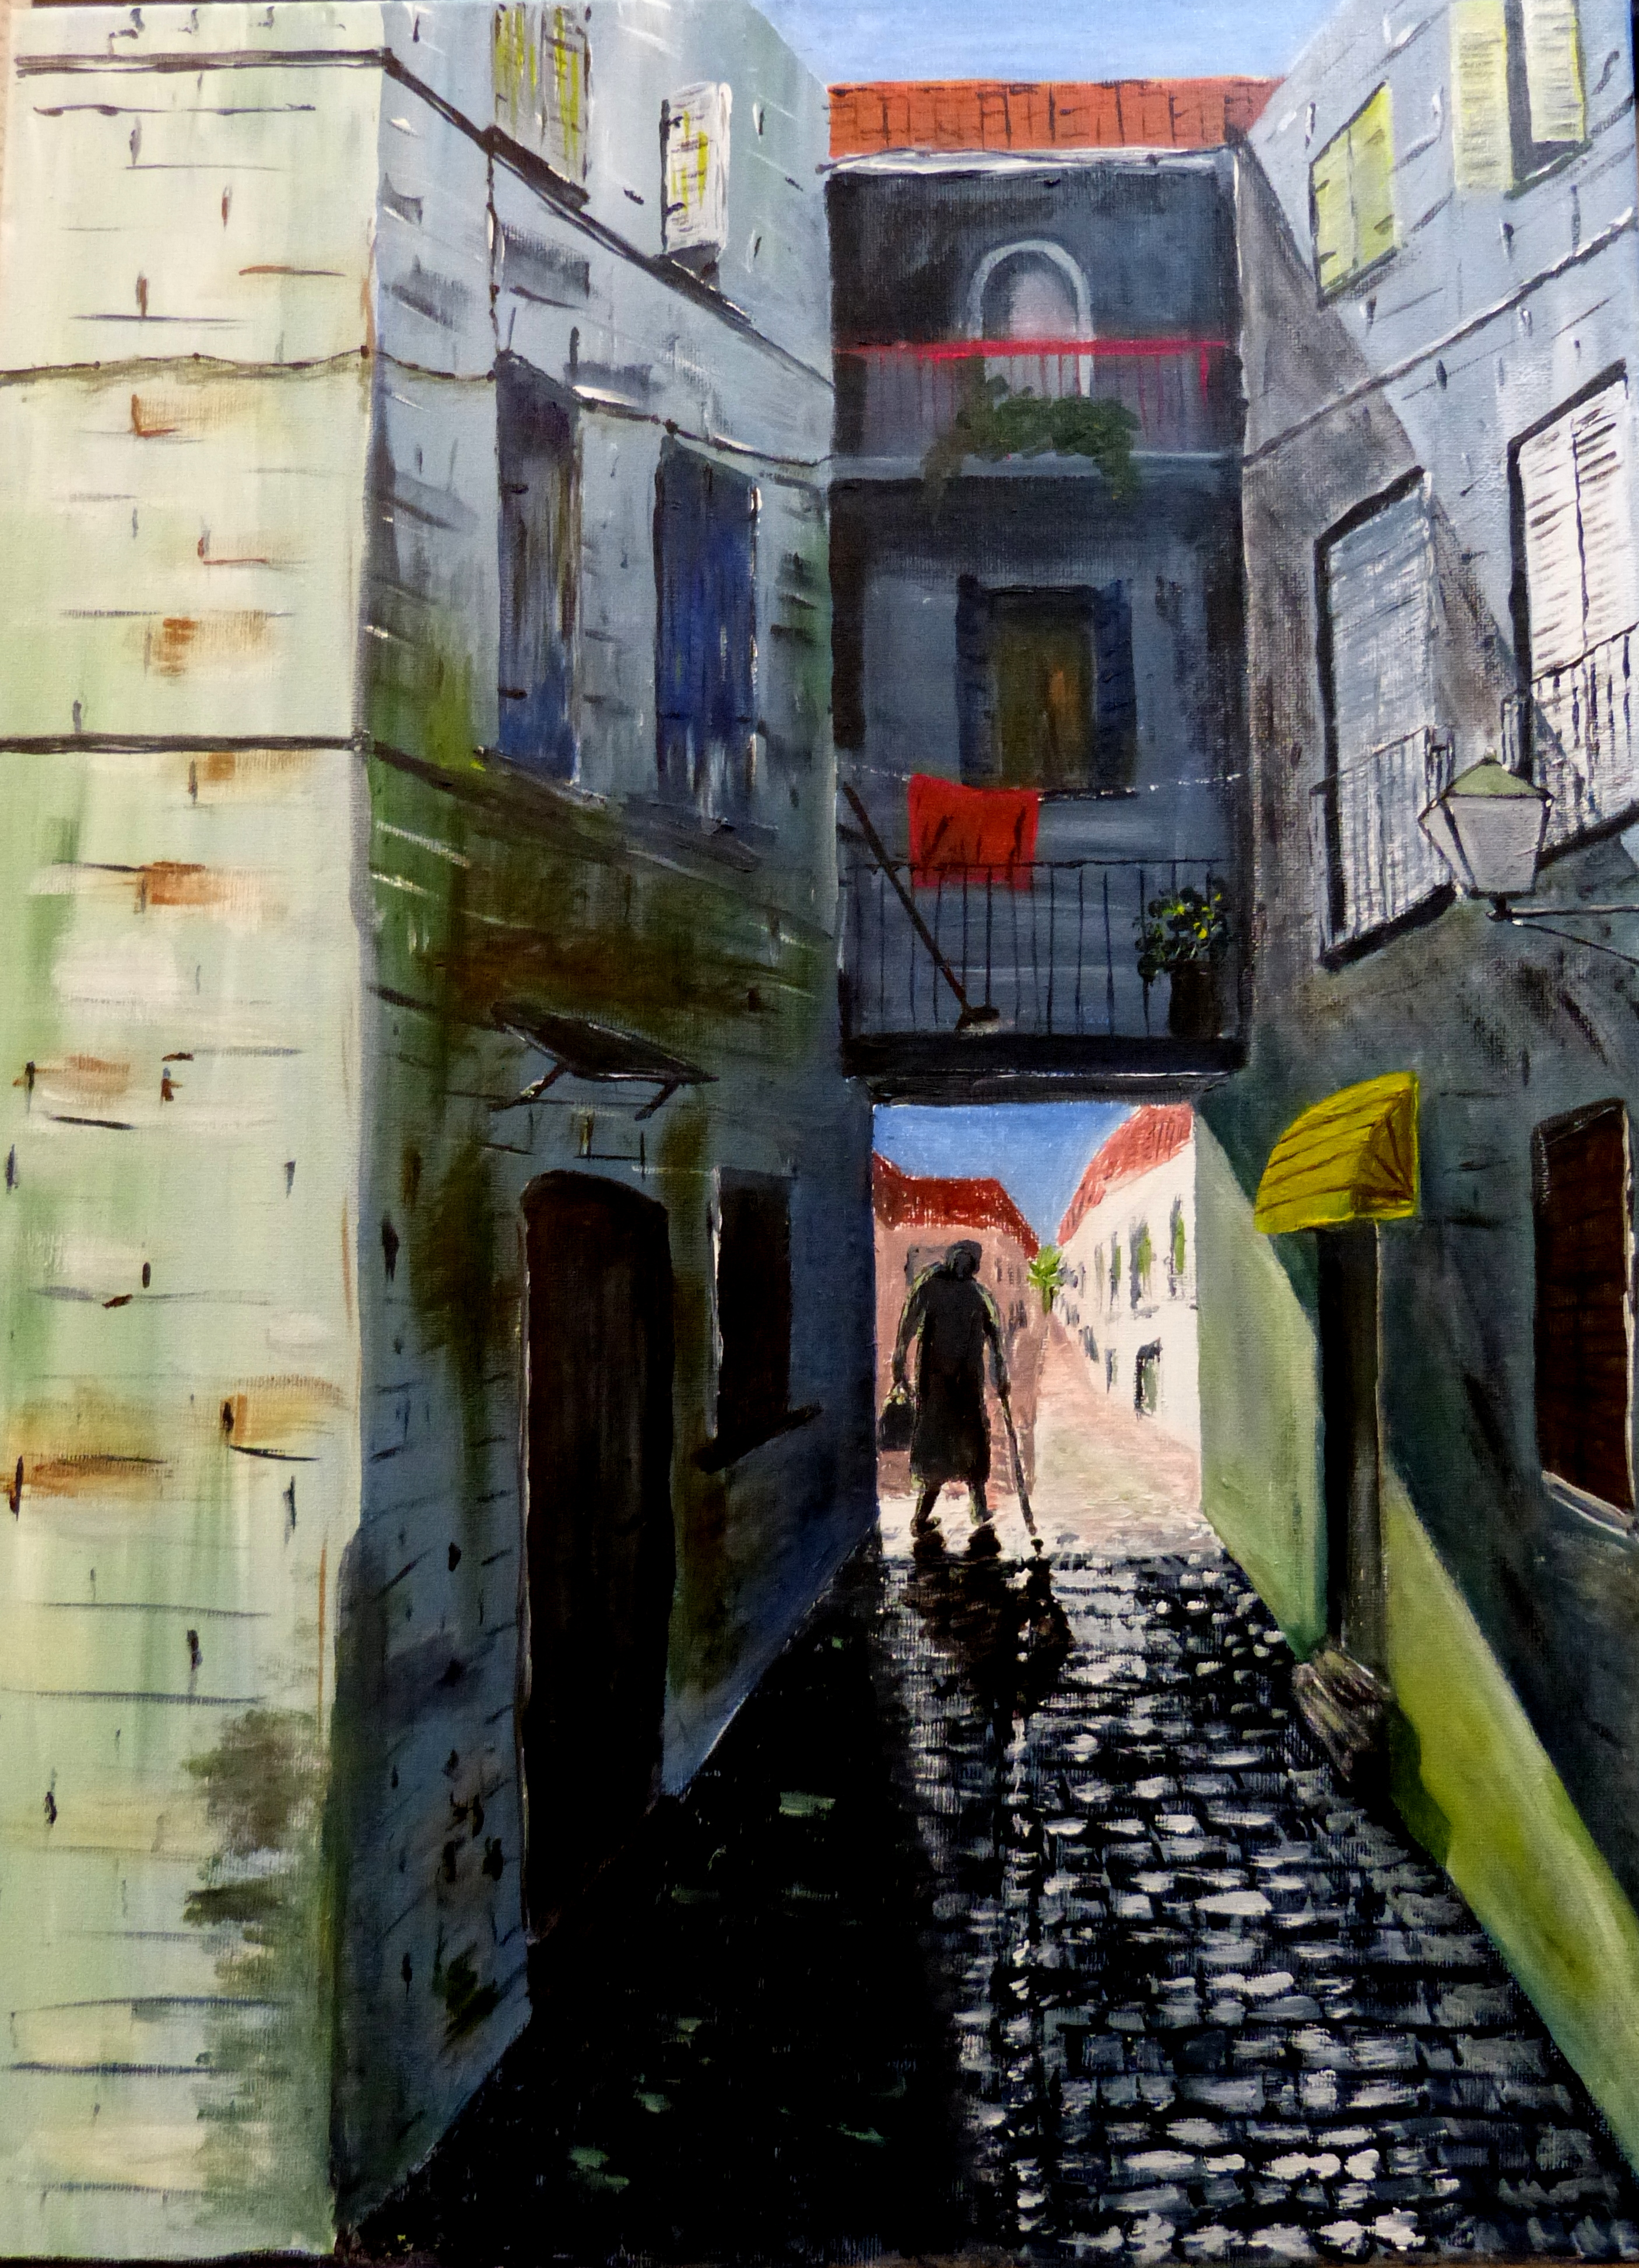 The alley - based on a scene in Croatia